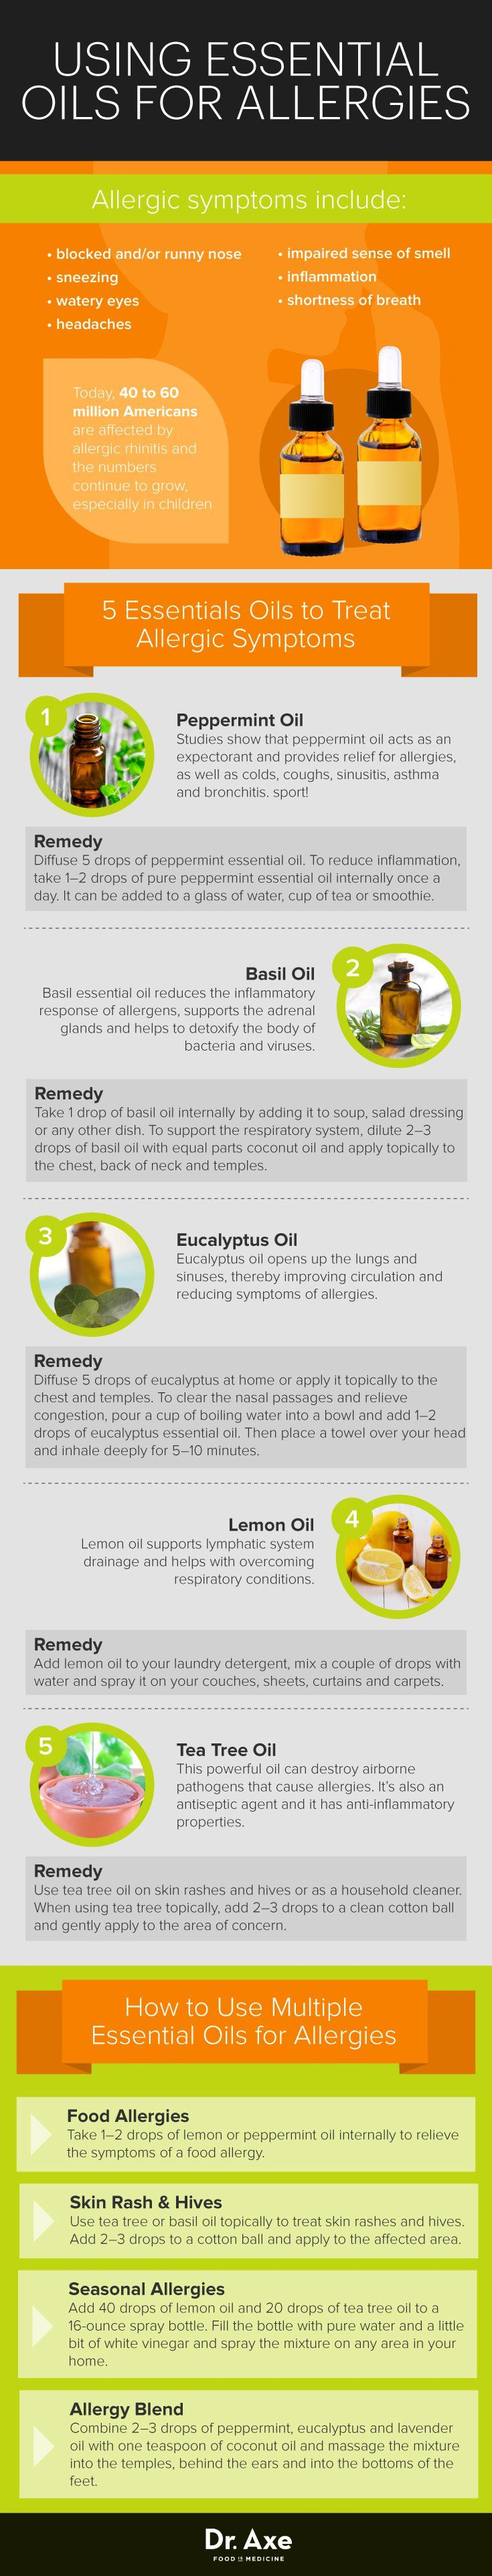 Top 5 Essential Oils for Allergies - Dr. Axe